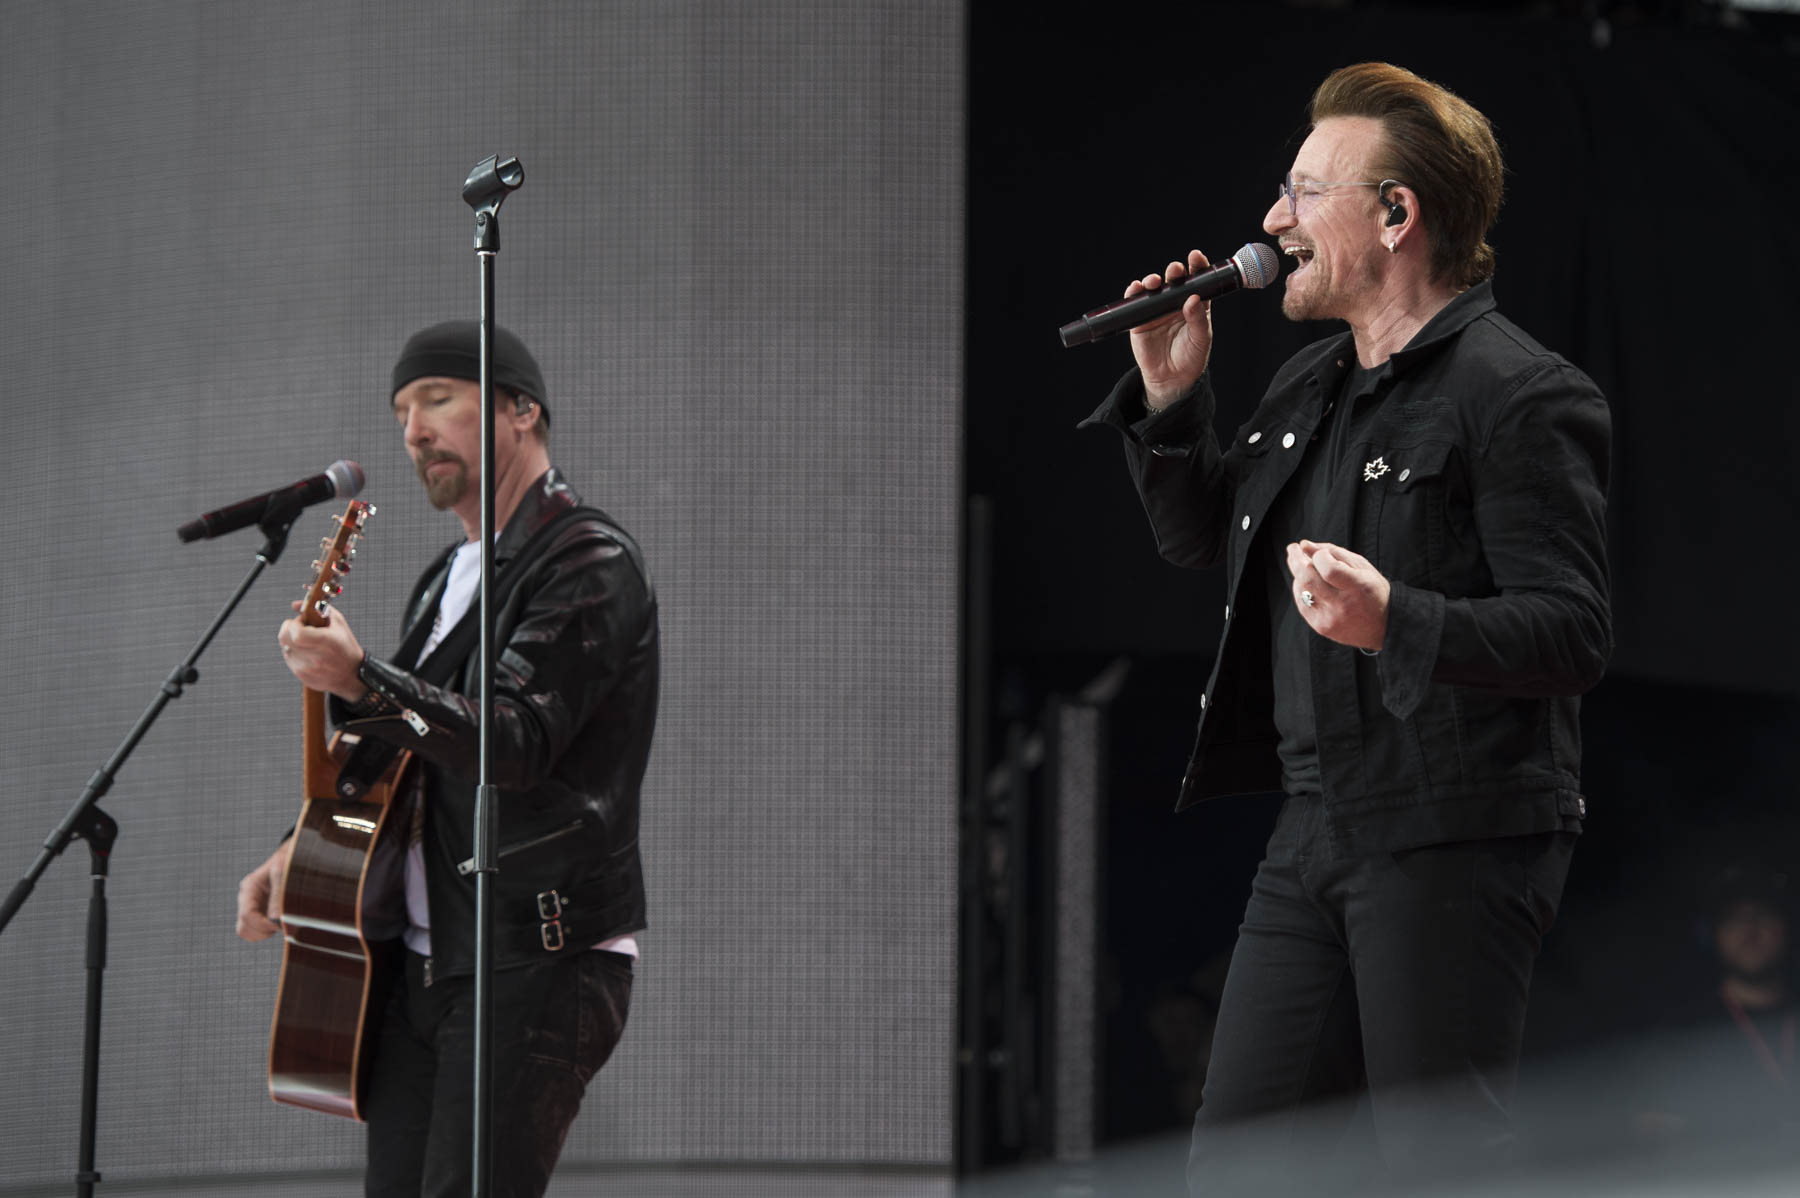 Bono and The Edge, were among those who performed at the event.